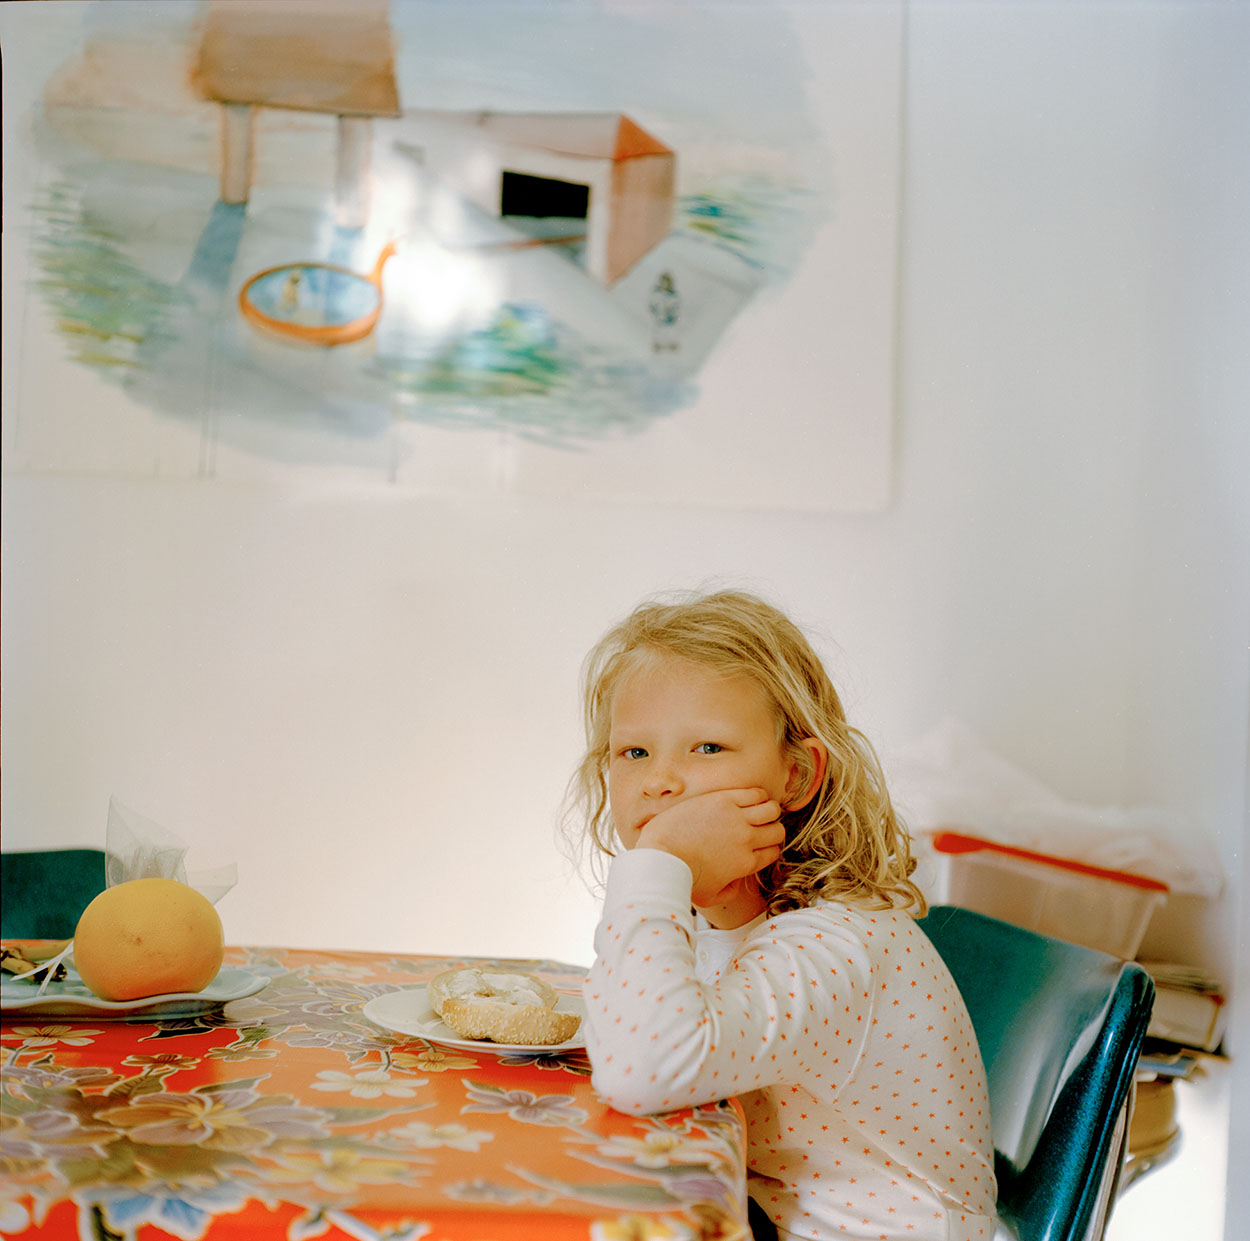 Alice Looking At Me © Peggy Nolan. Image courtesy of Daylight Books.